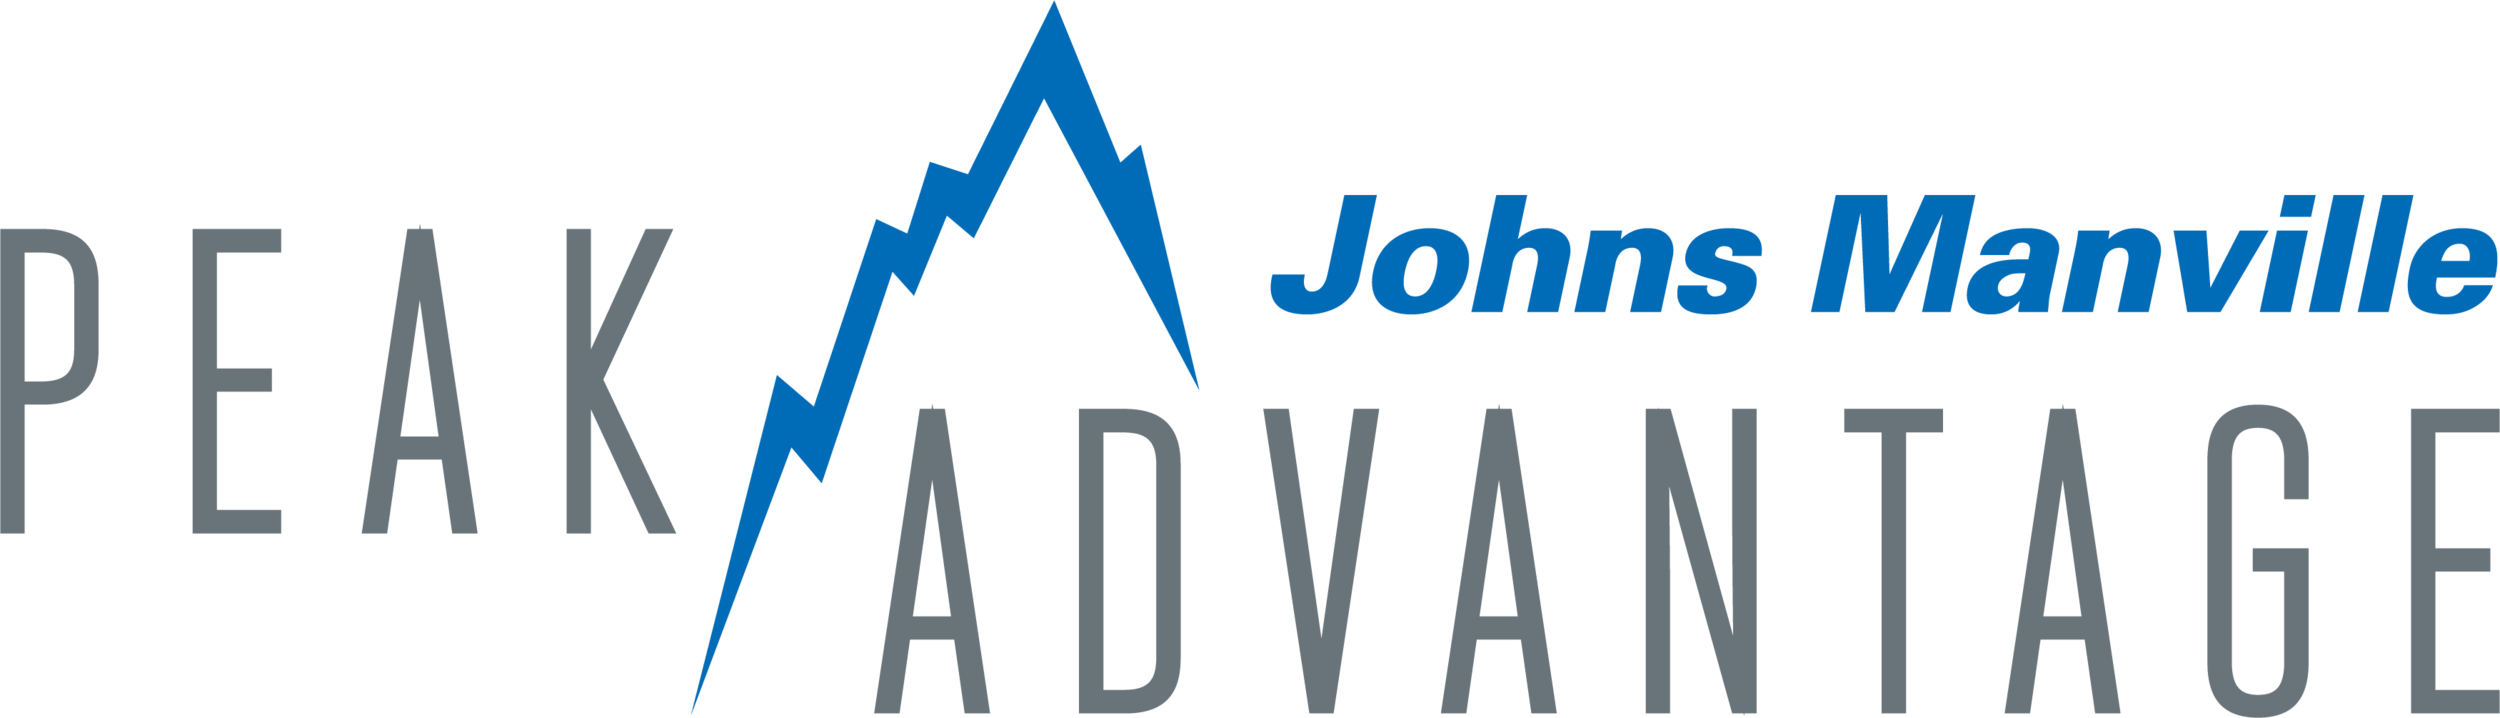 Peak Advantage logo.png